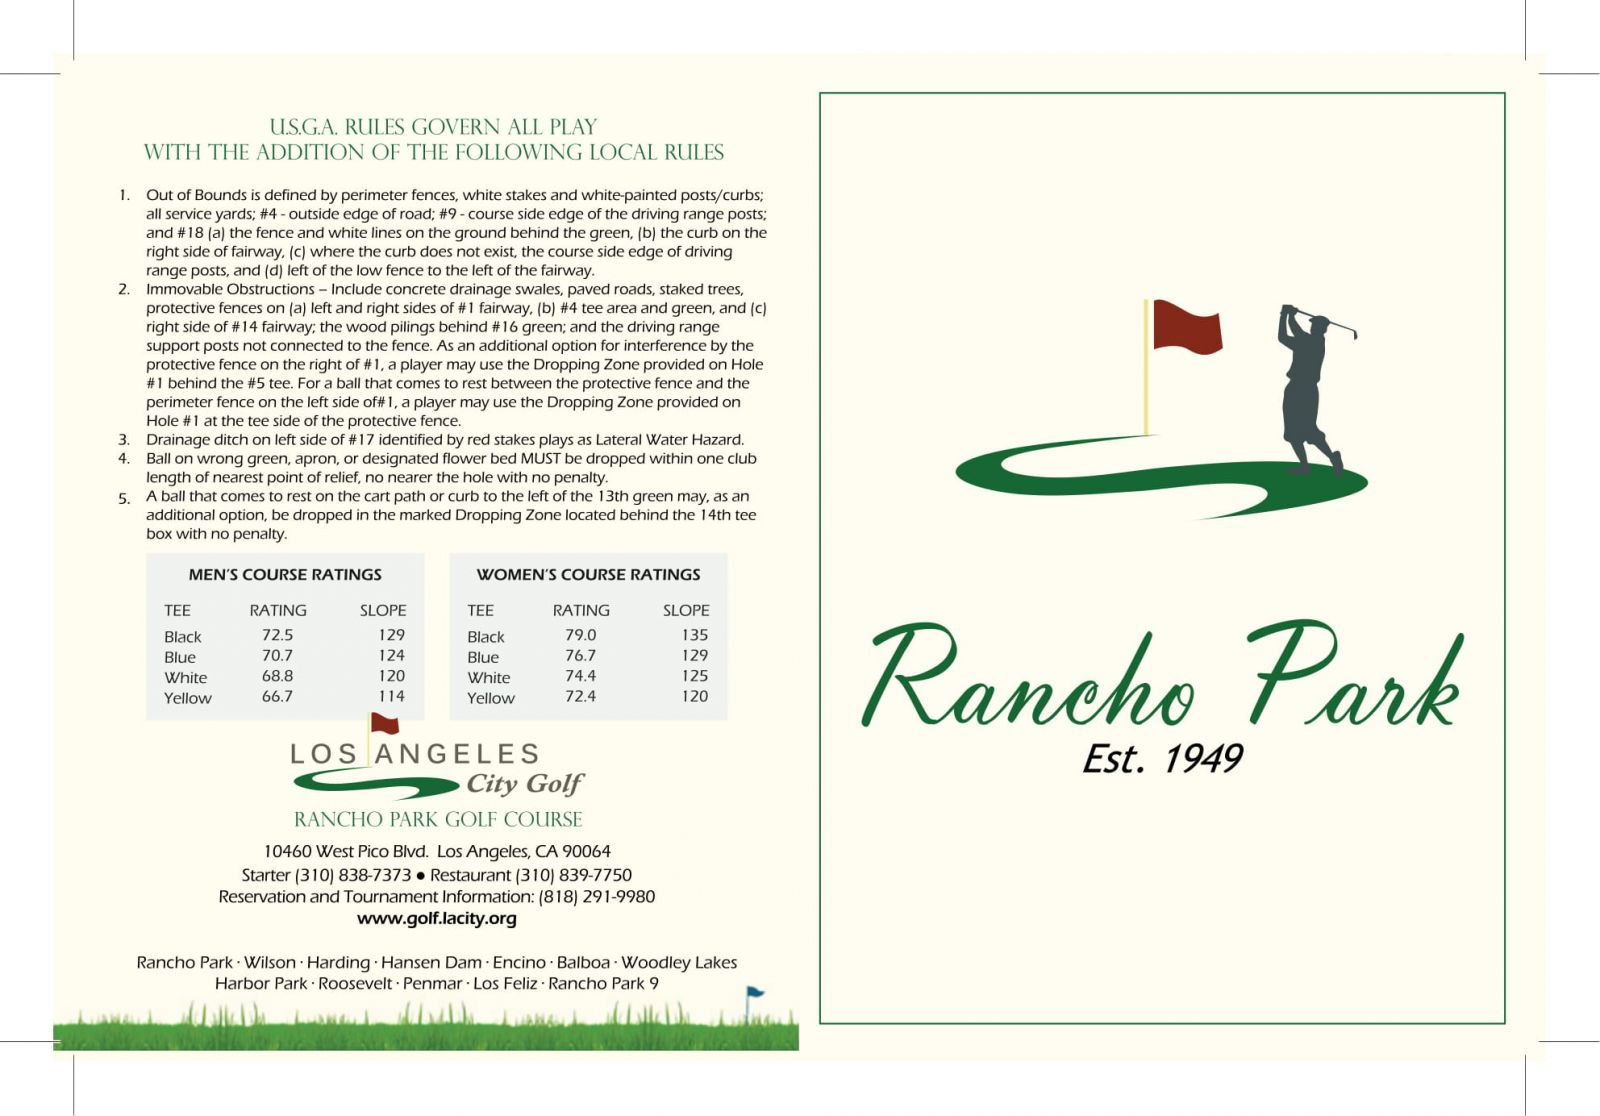 Rancho Park Golf Course scorecard inside